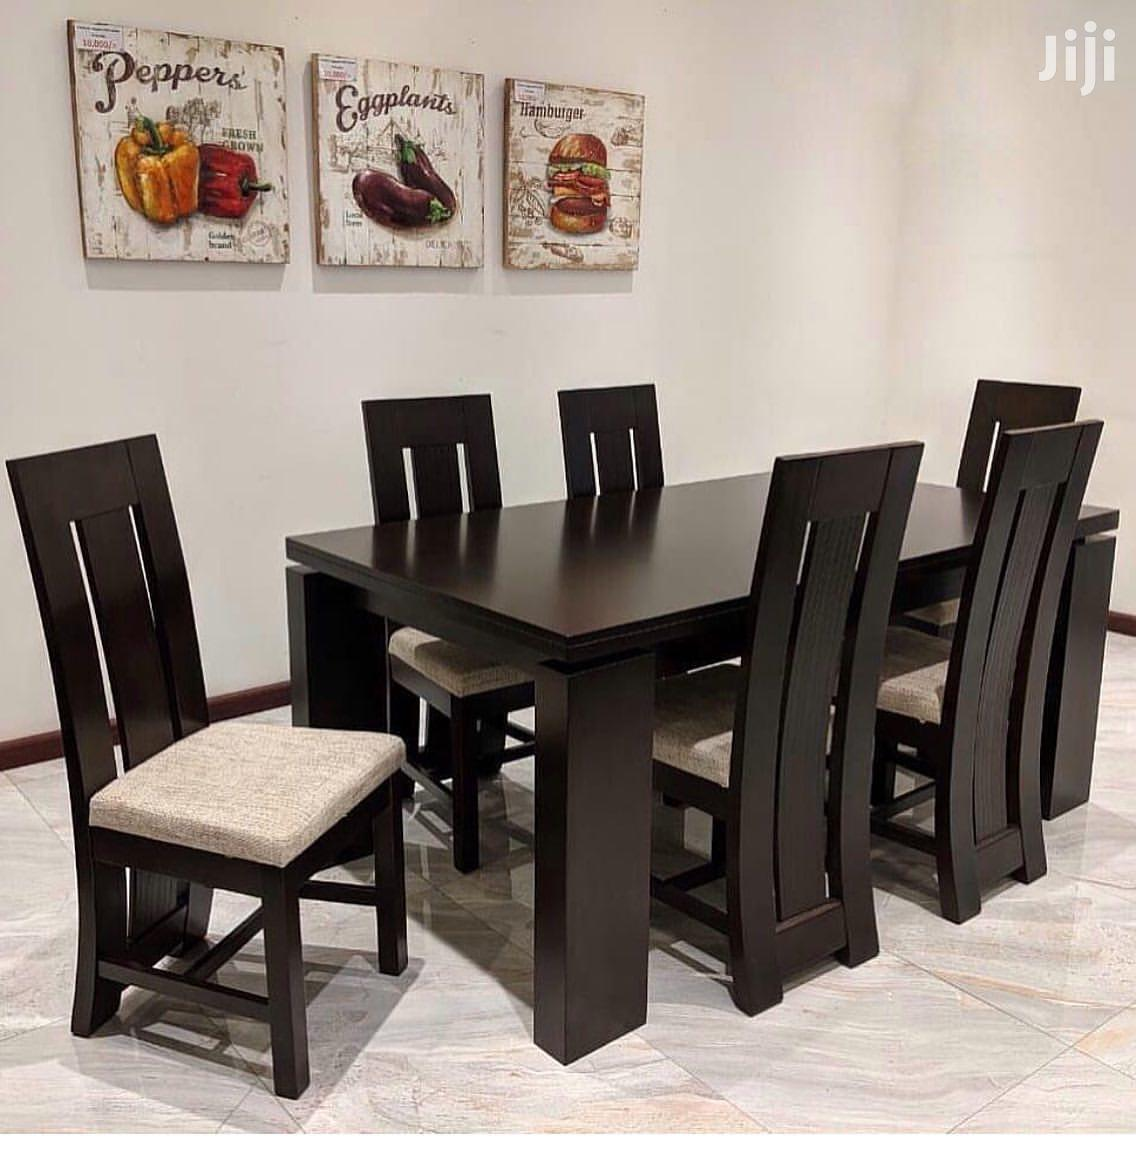 Dinning Tables | Furniture for sale in Kinondoni, Dar es Salaam, Tanzania